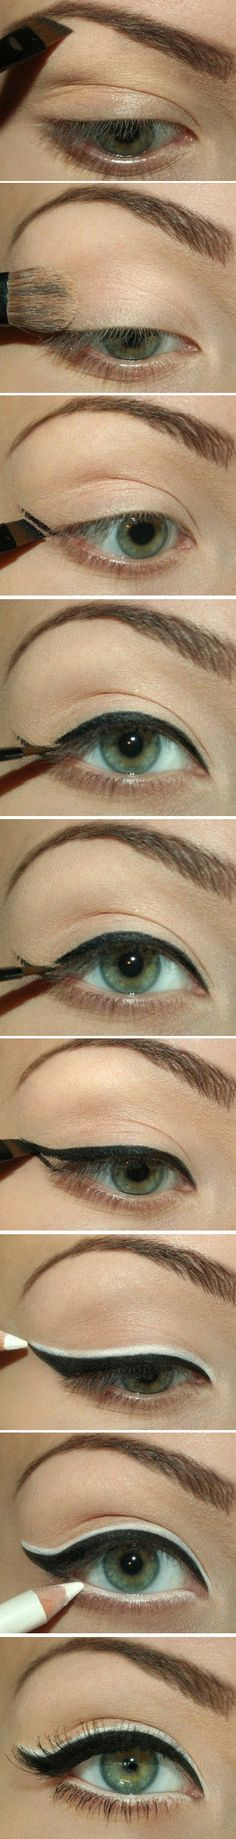 Black and White Cat Eye Tutorial so cute